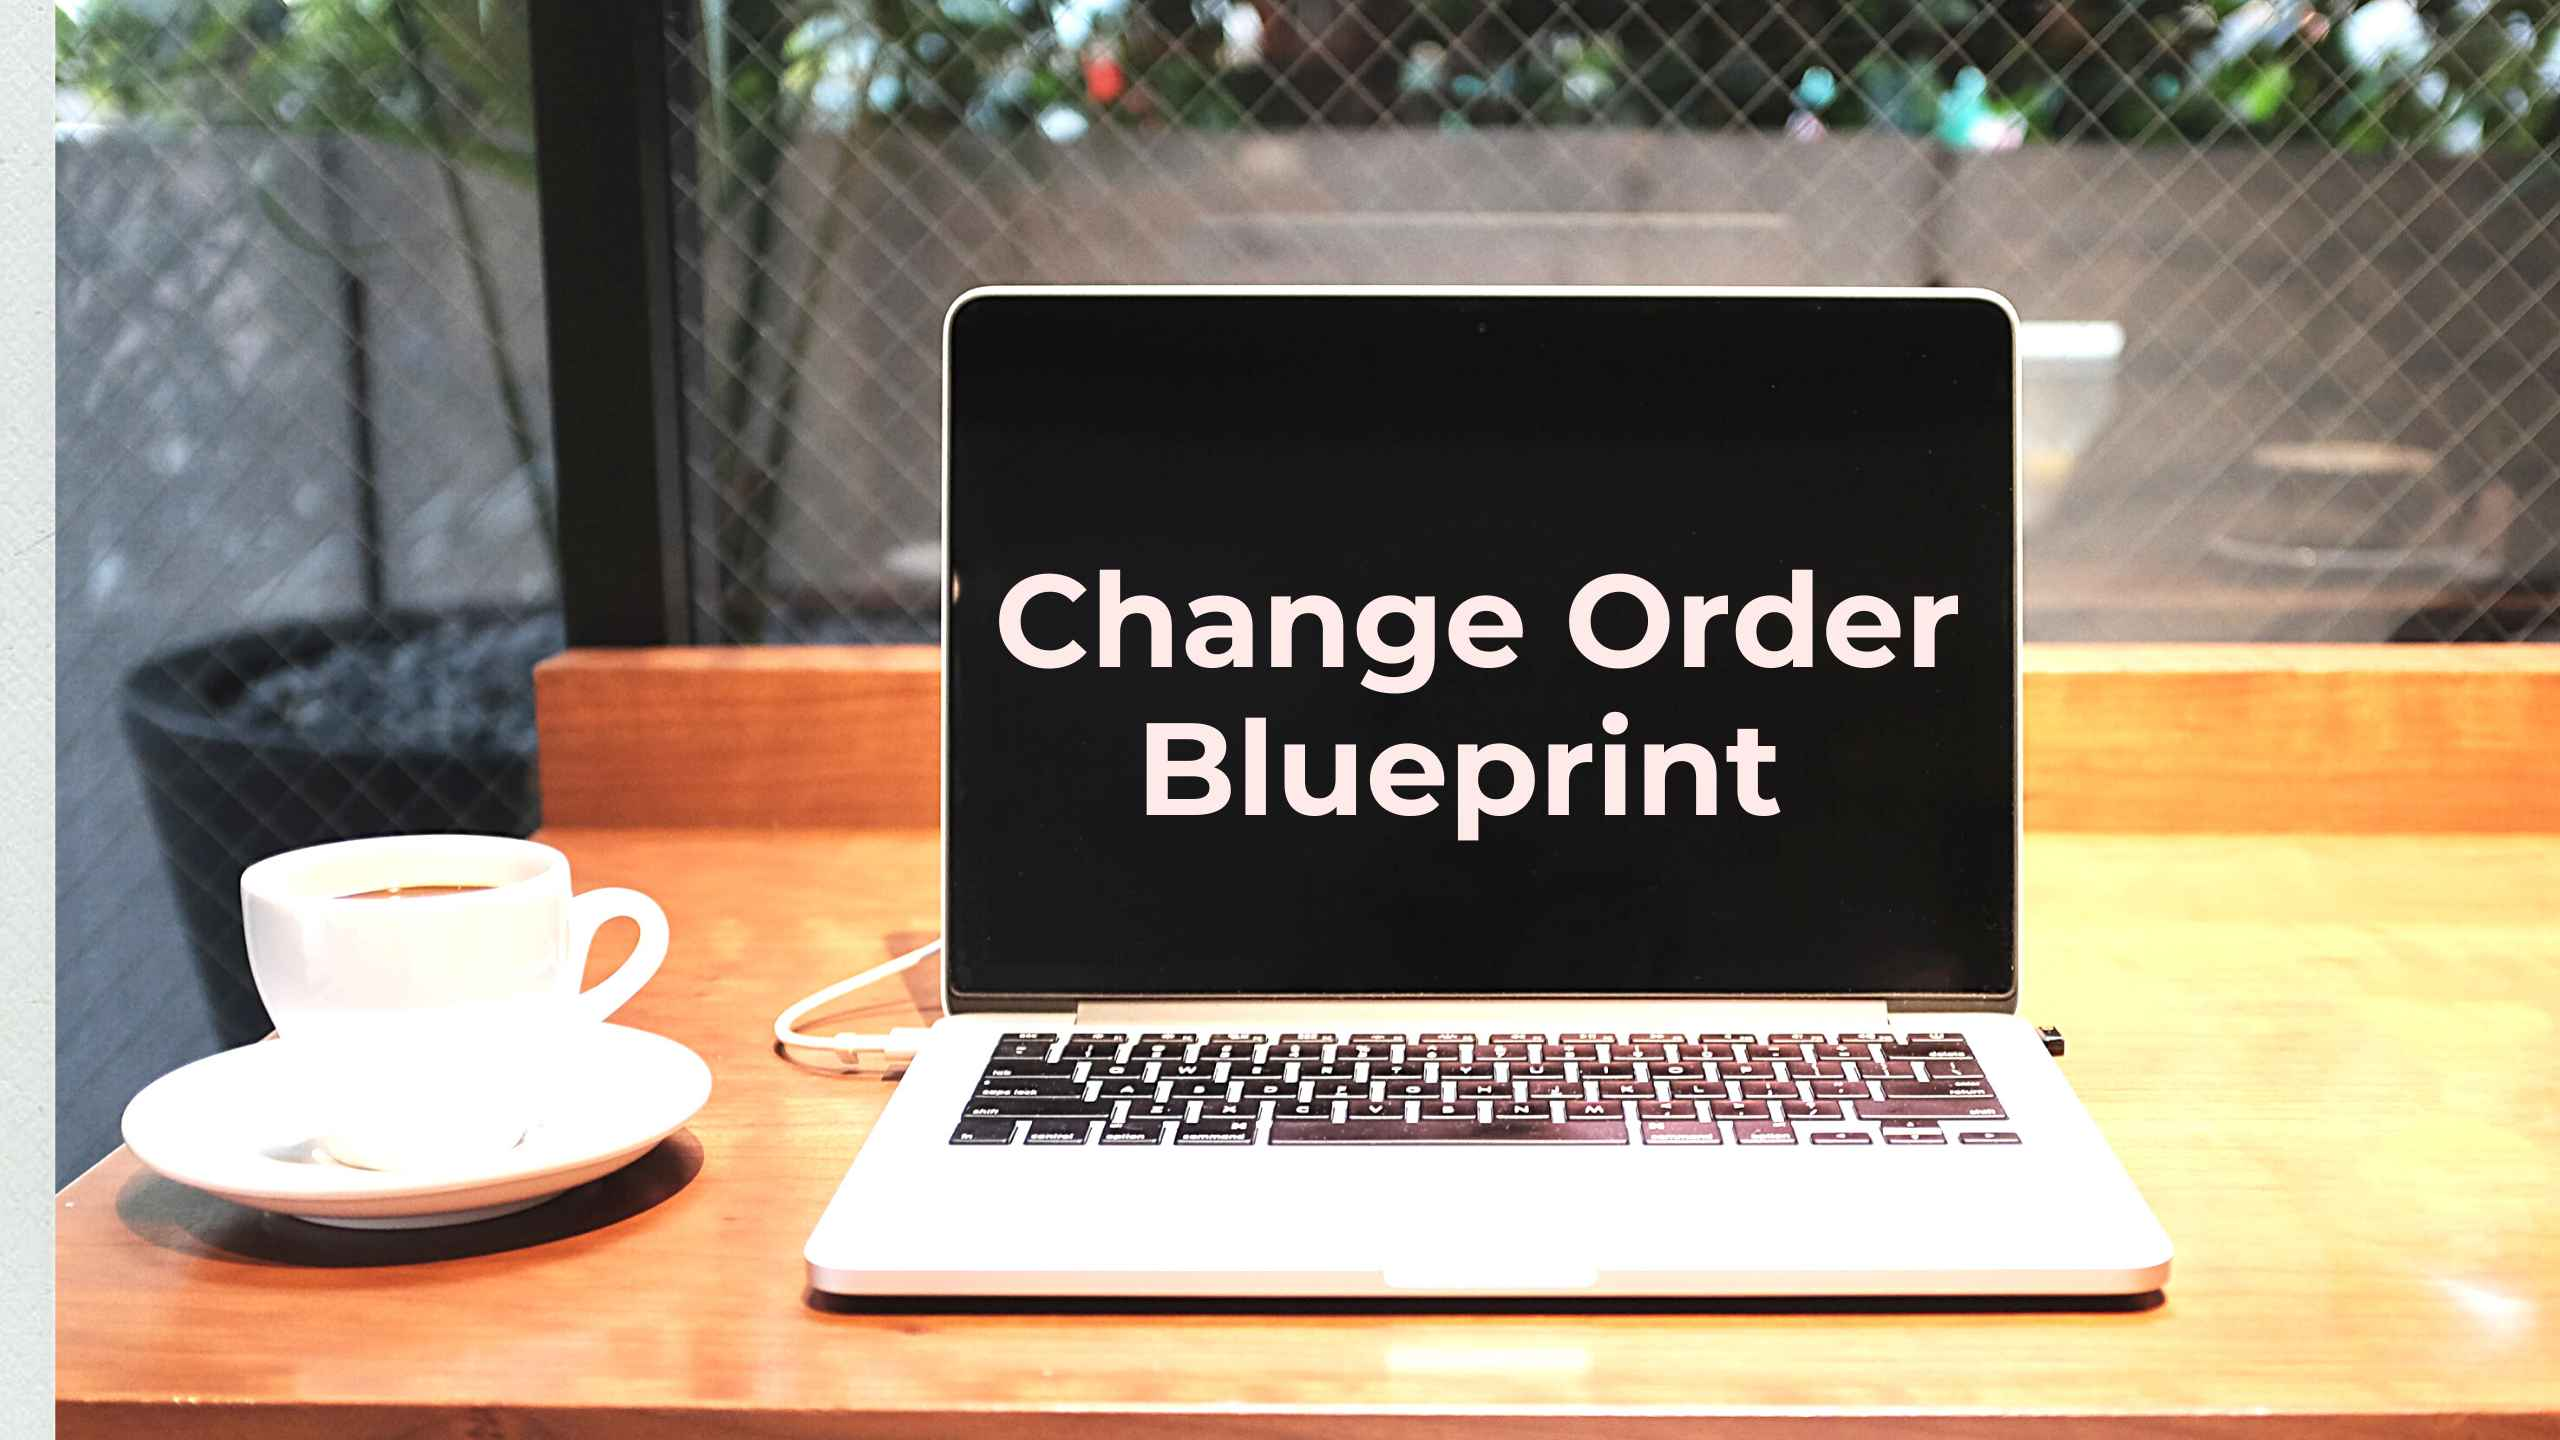 Change Order Blueprint